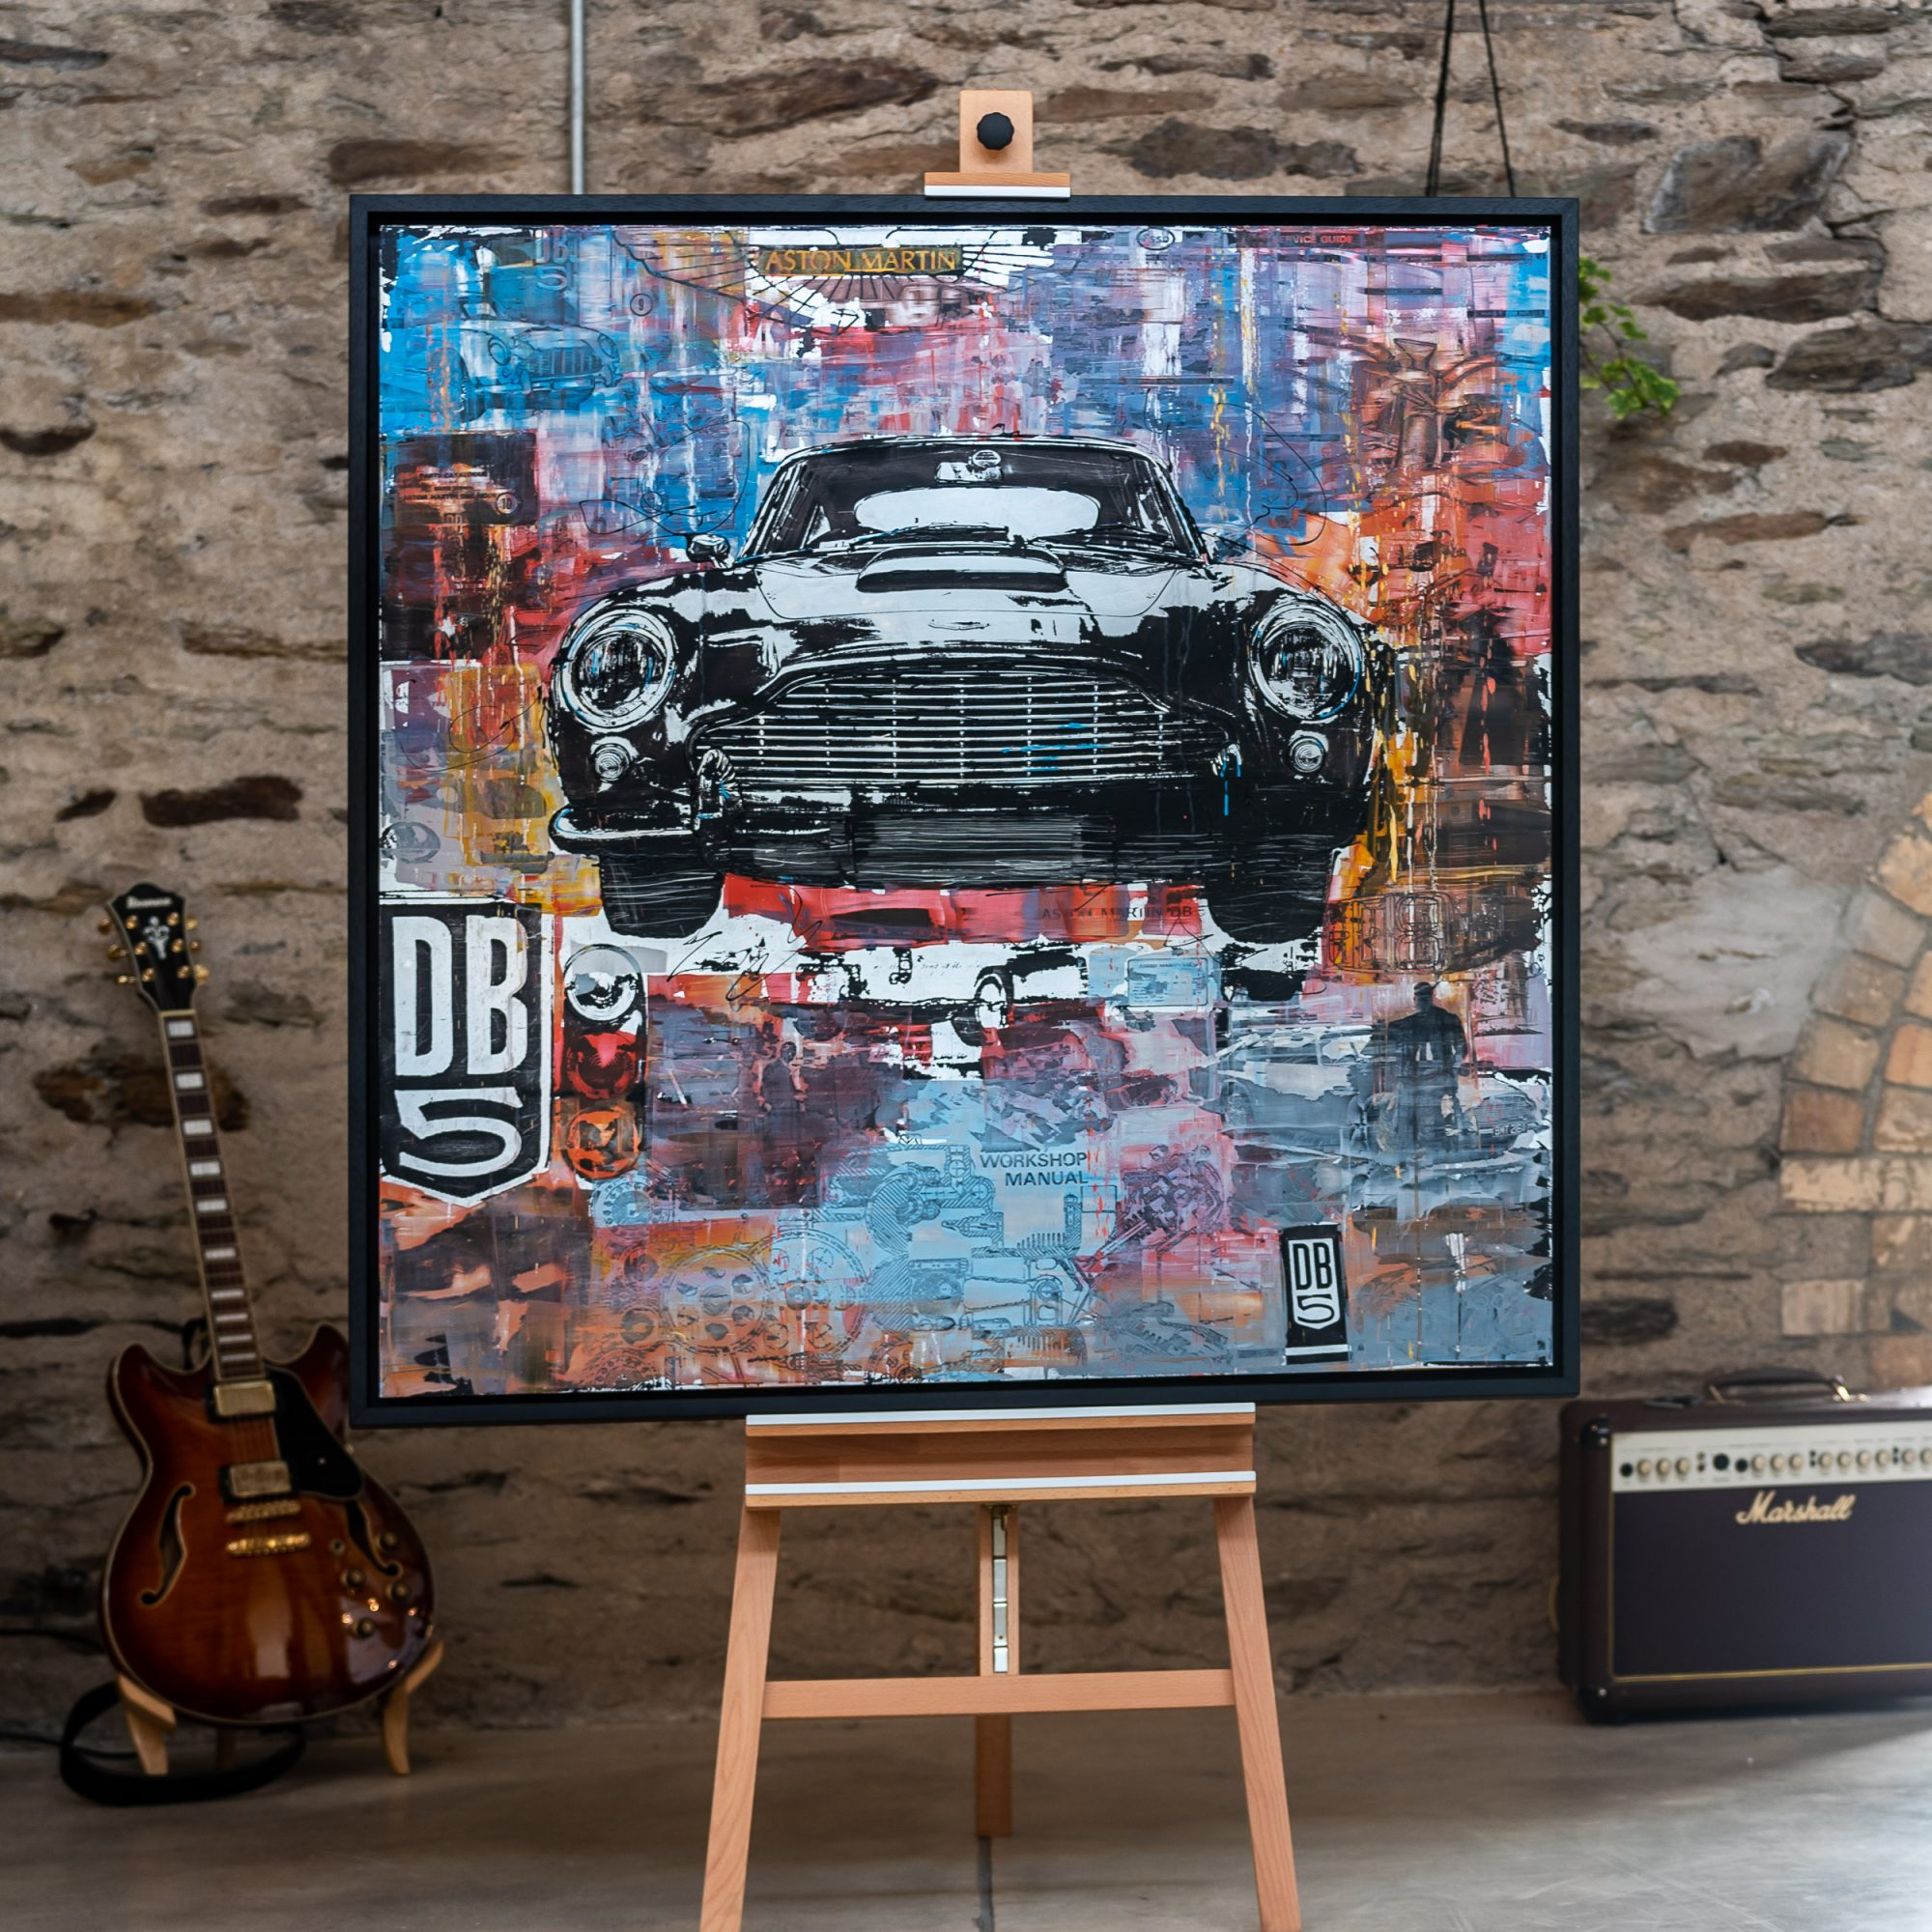 Aston Martin DB5 by Paul Kenton, UK Contemporary artist, an original painting from his Motorsports collection